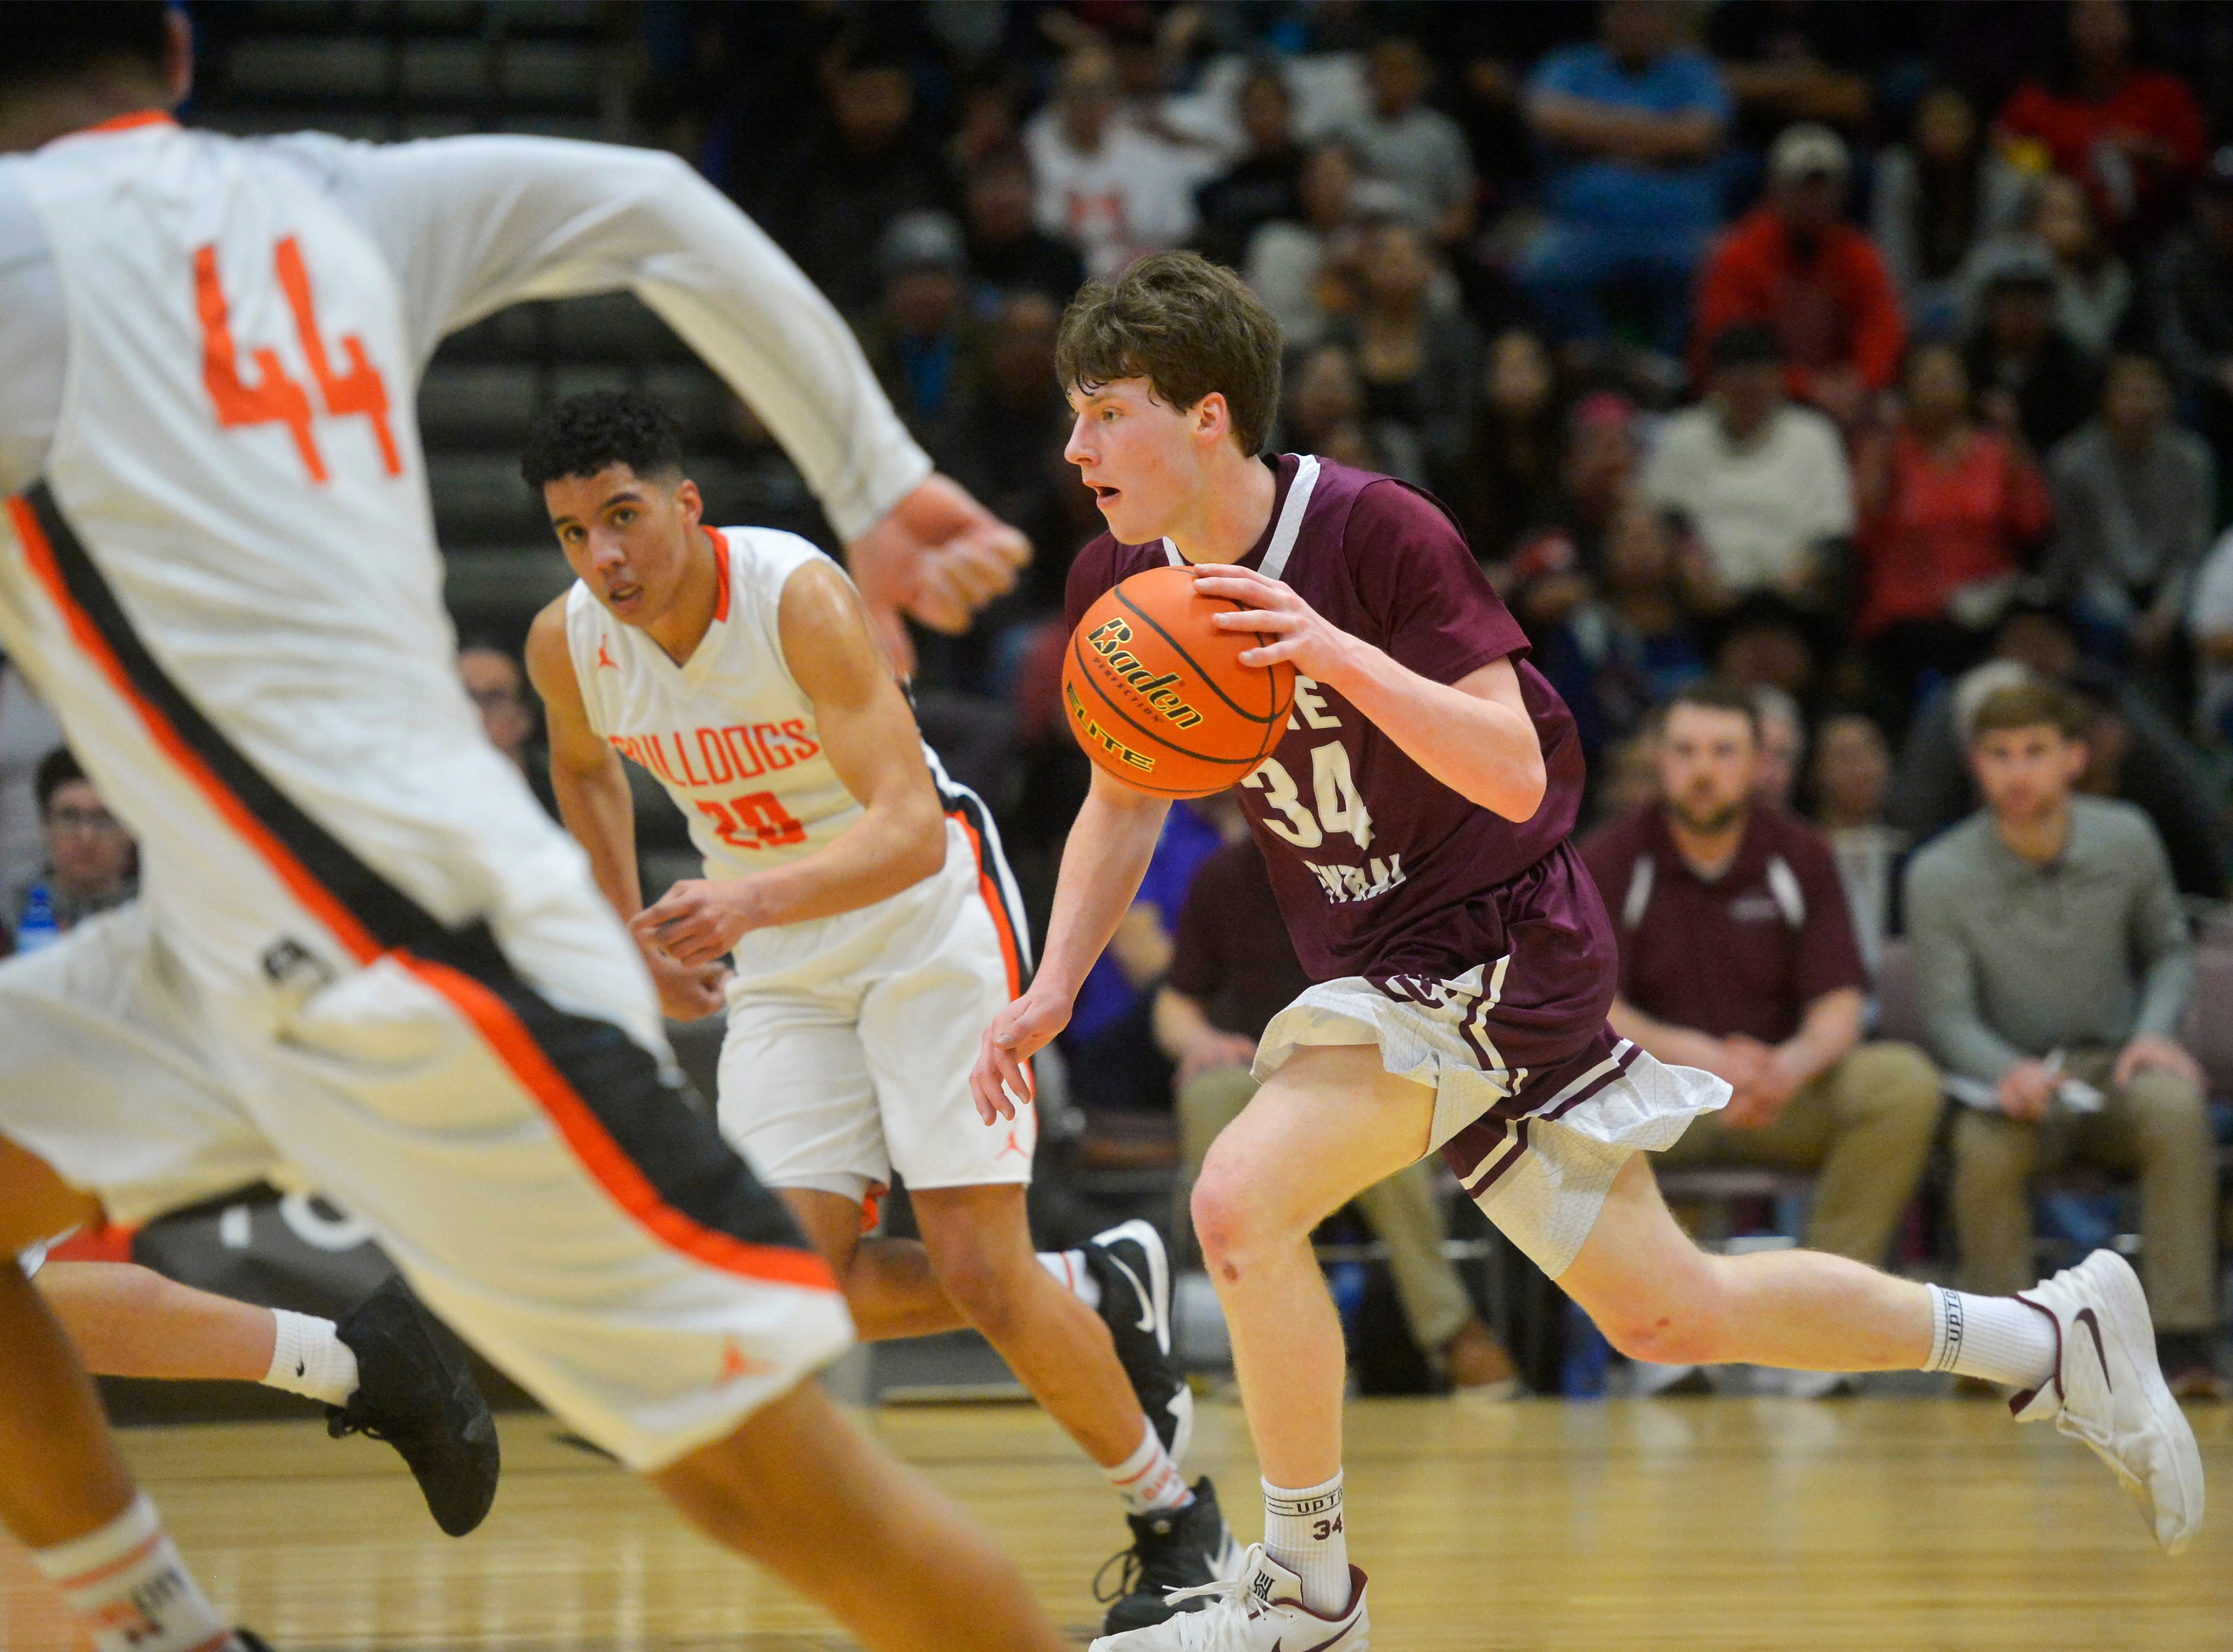 Butte Central's Cade Holter pushes the ball up the floor during the semifinal game against Hardin at the State Class A Basketball Tournament in the Four Seasons Arena, Friday.